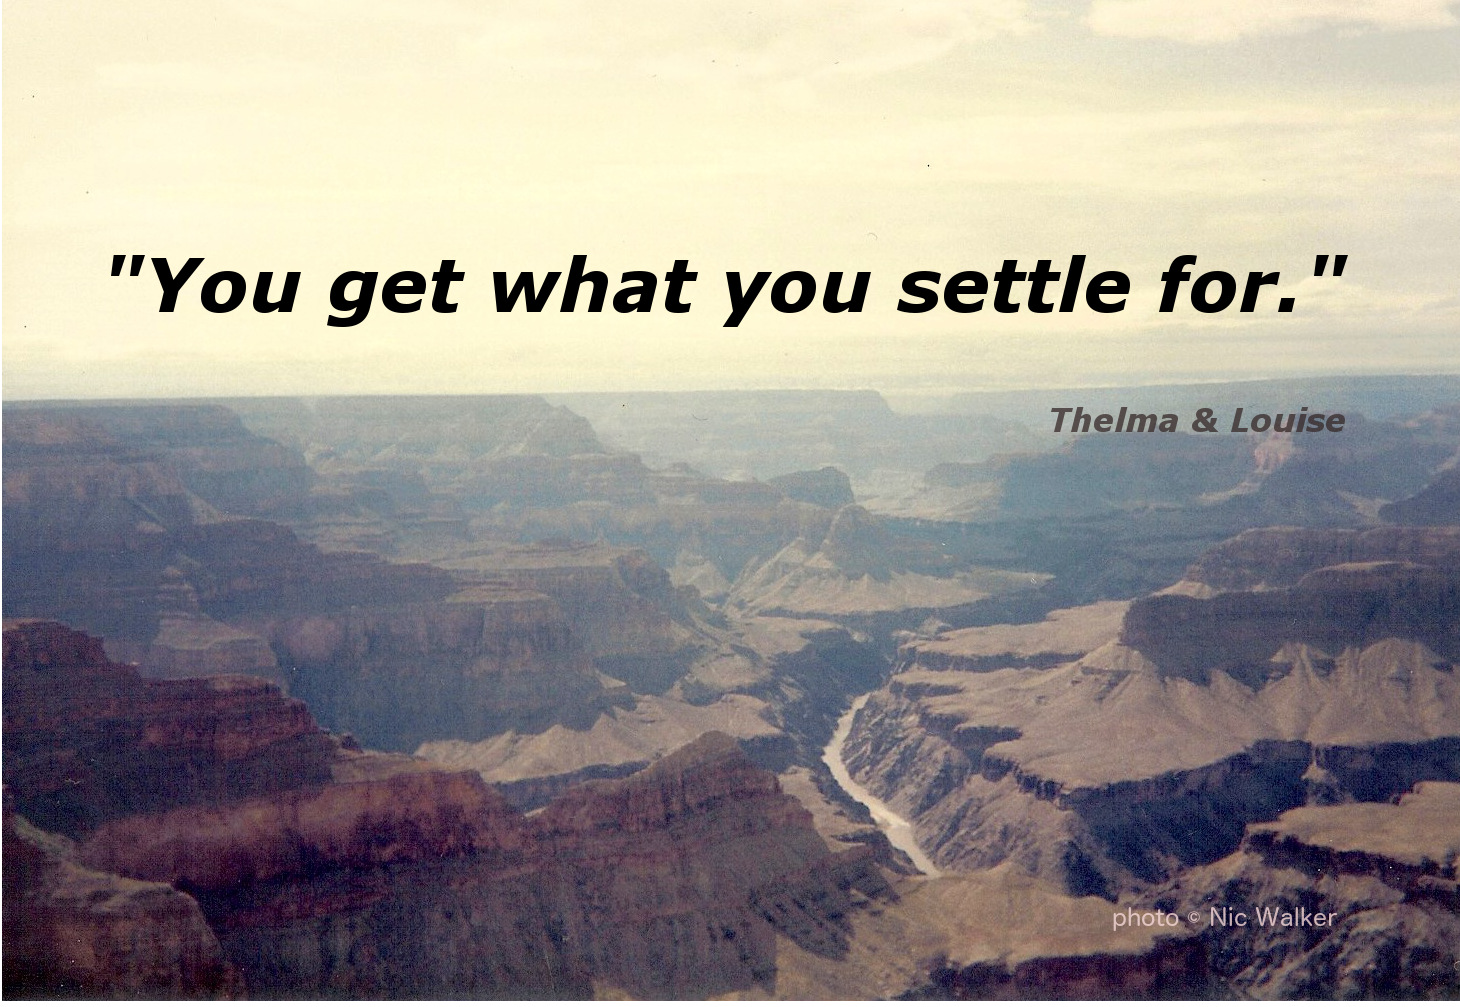 YOU GET WHAT YOU SETTLE FOR - Nicola Walker Catalyst